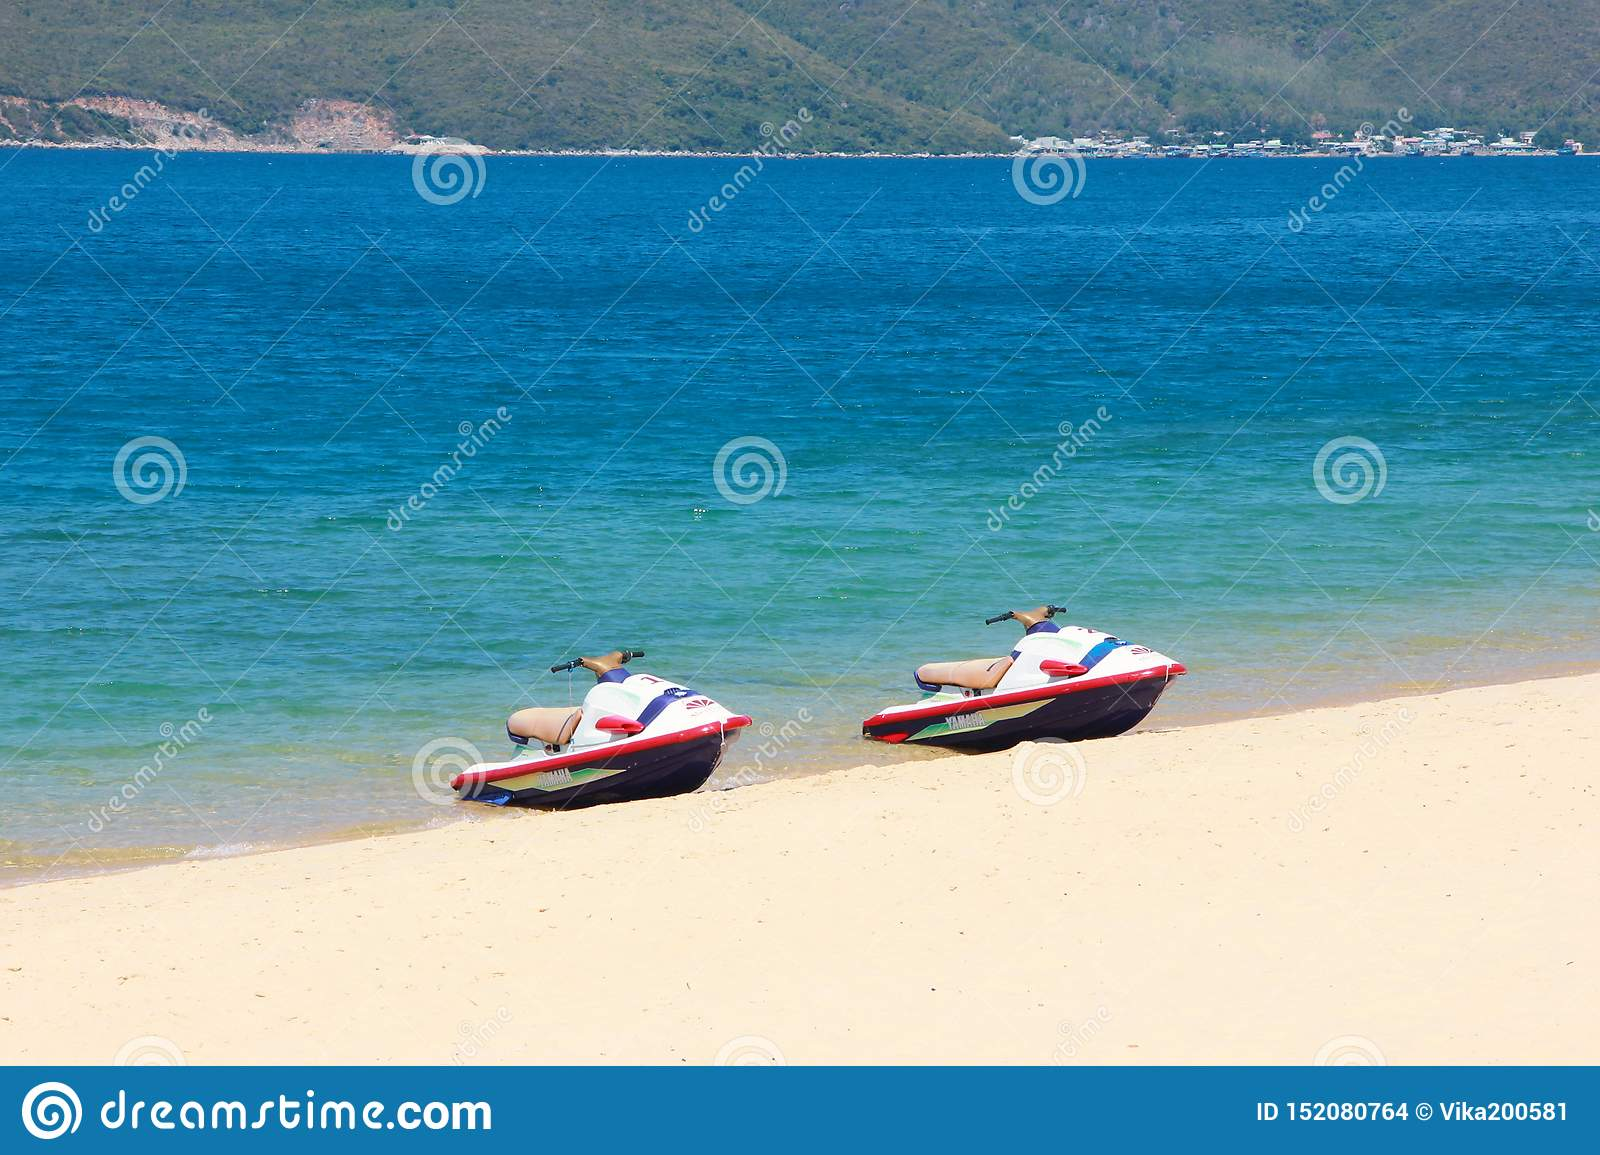 Two hydroscooters are on the beautiful beach